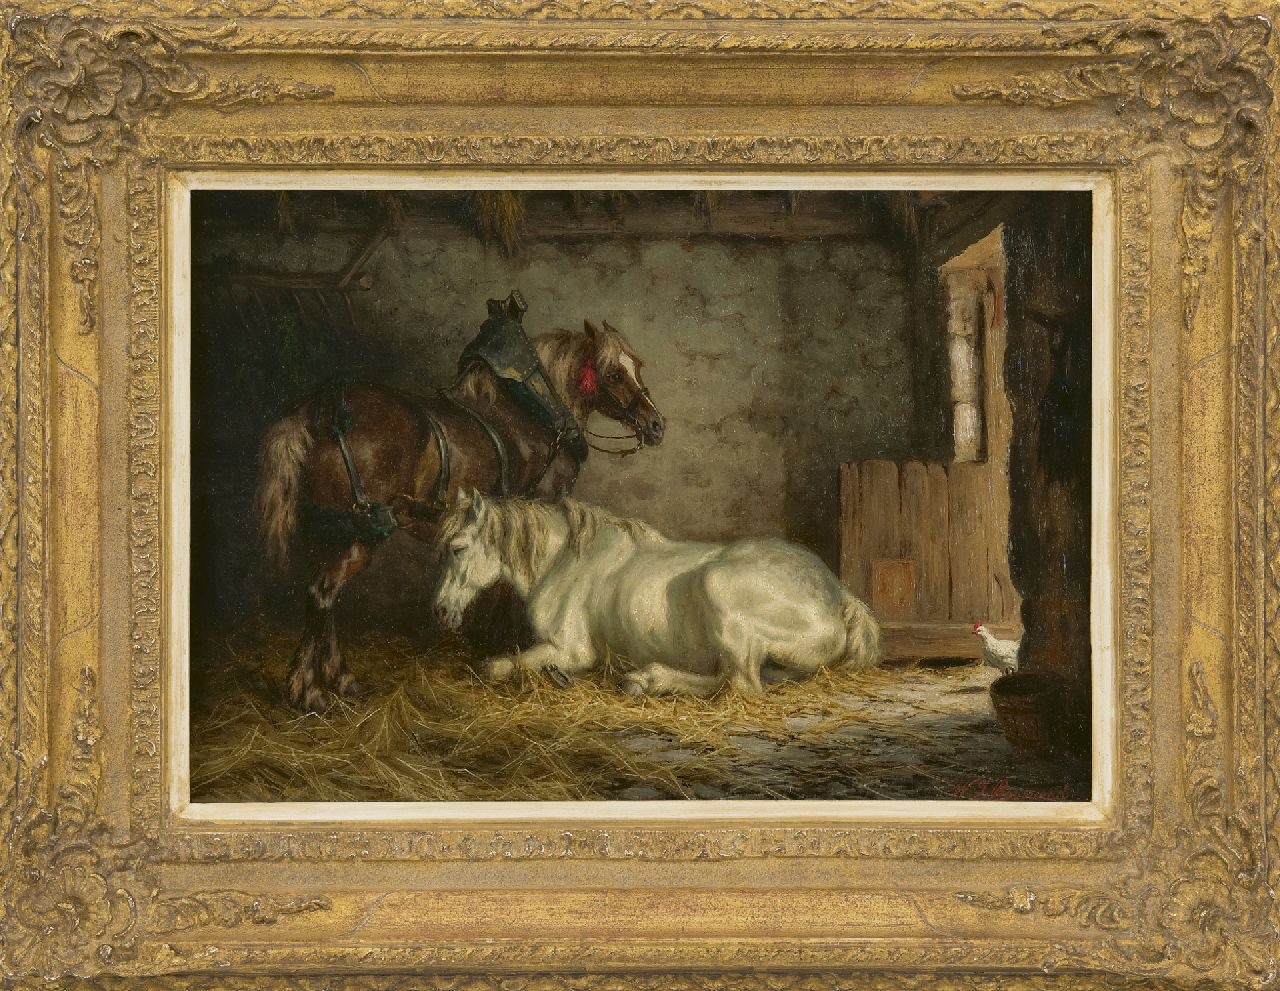 Boogaard W.J.  | Willem Johan Boogaard | Paintings offered for sale | Horses, resting in a stable, oil on panel 27.5 x 40.0 cm, signed l.r.